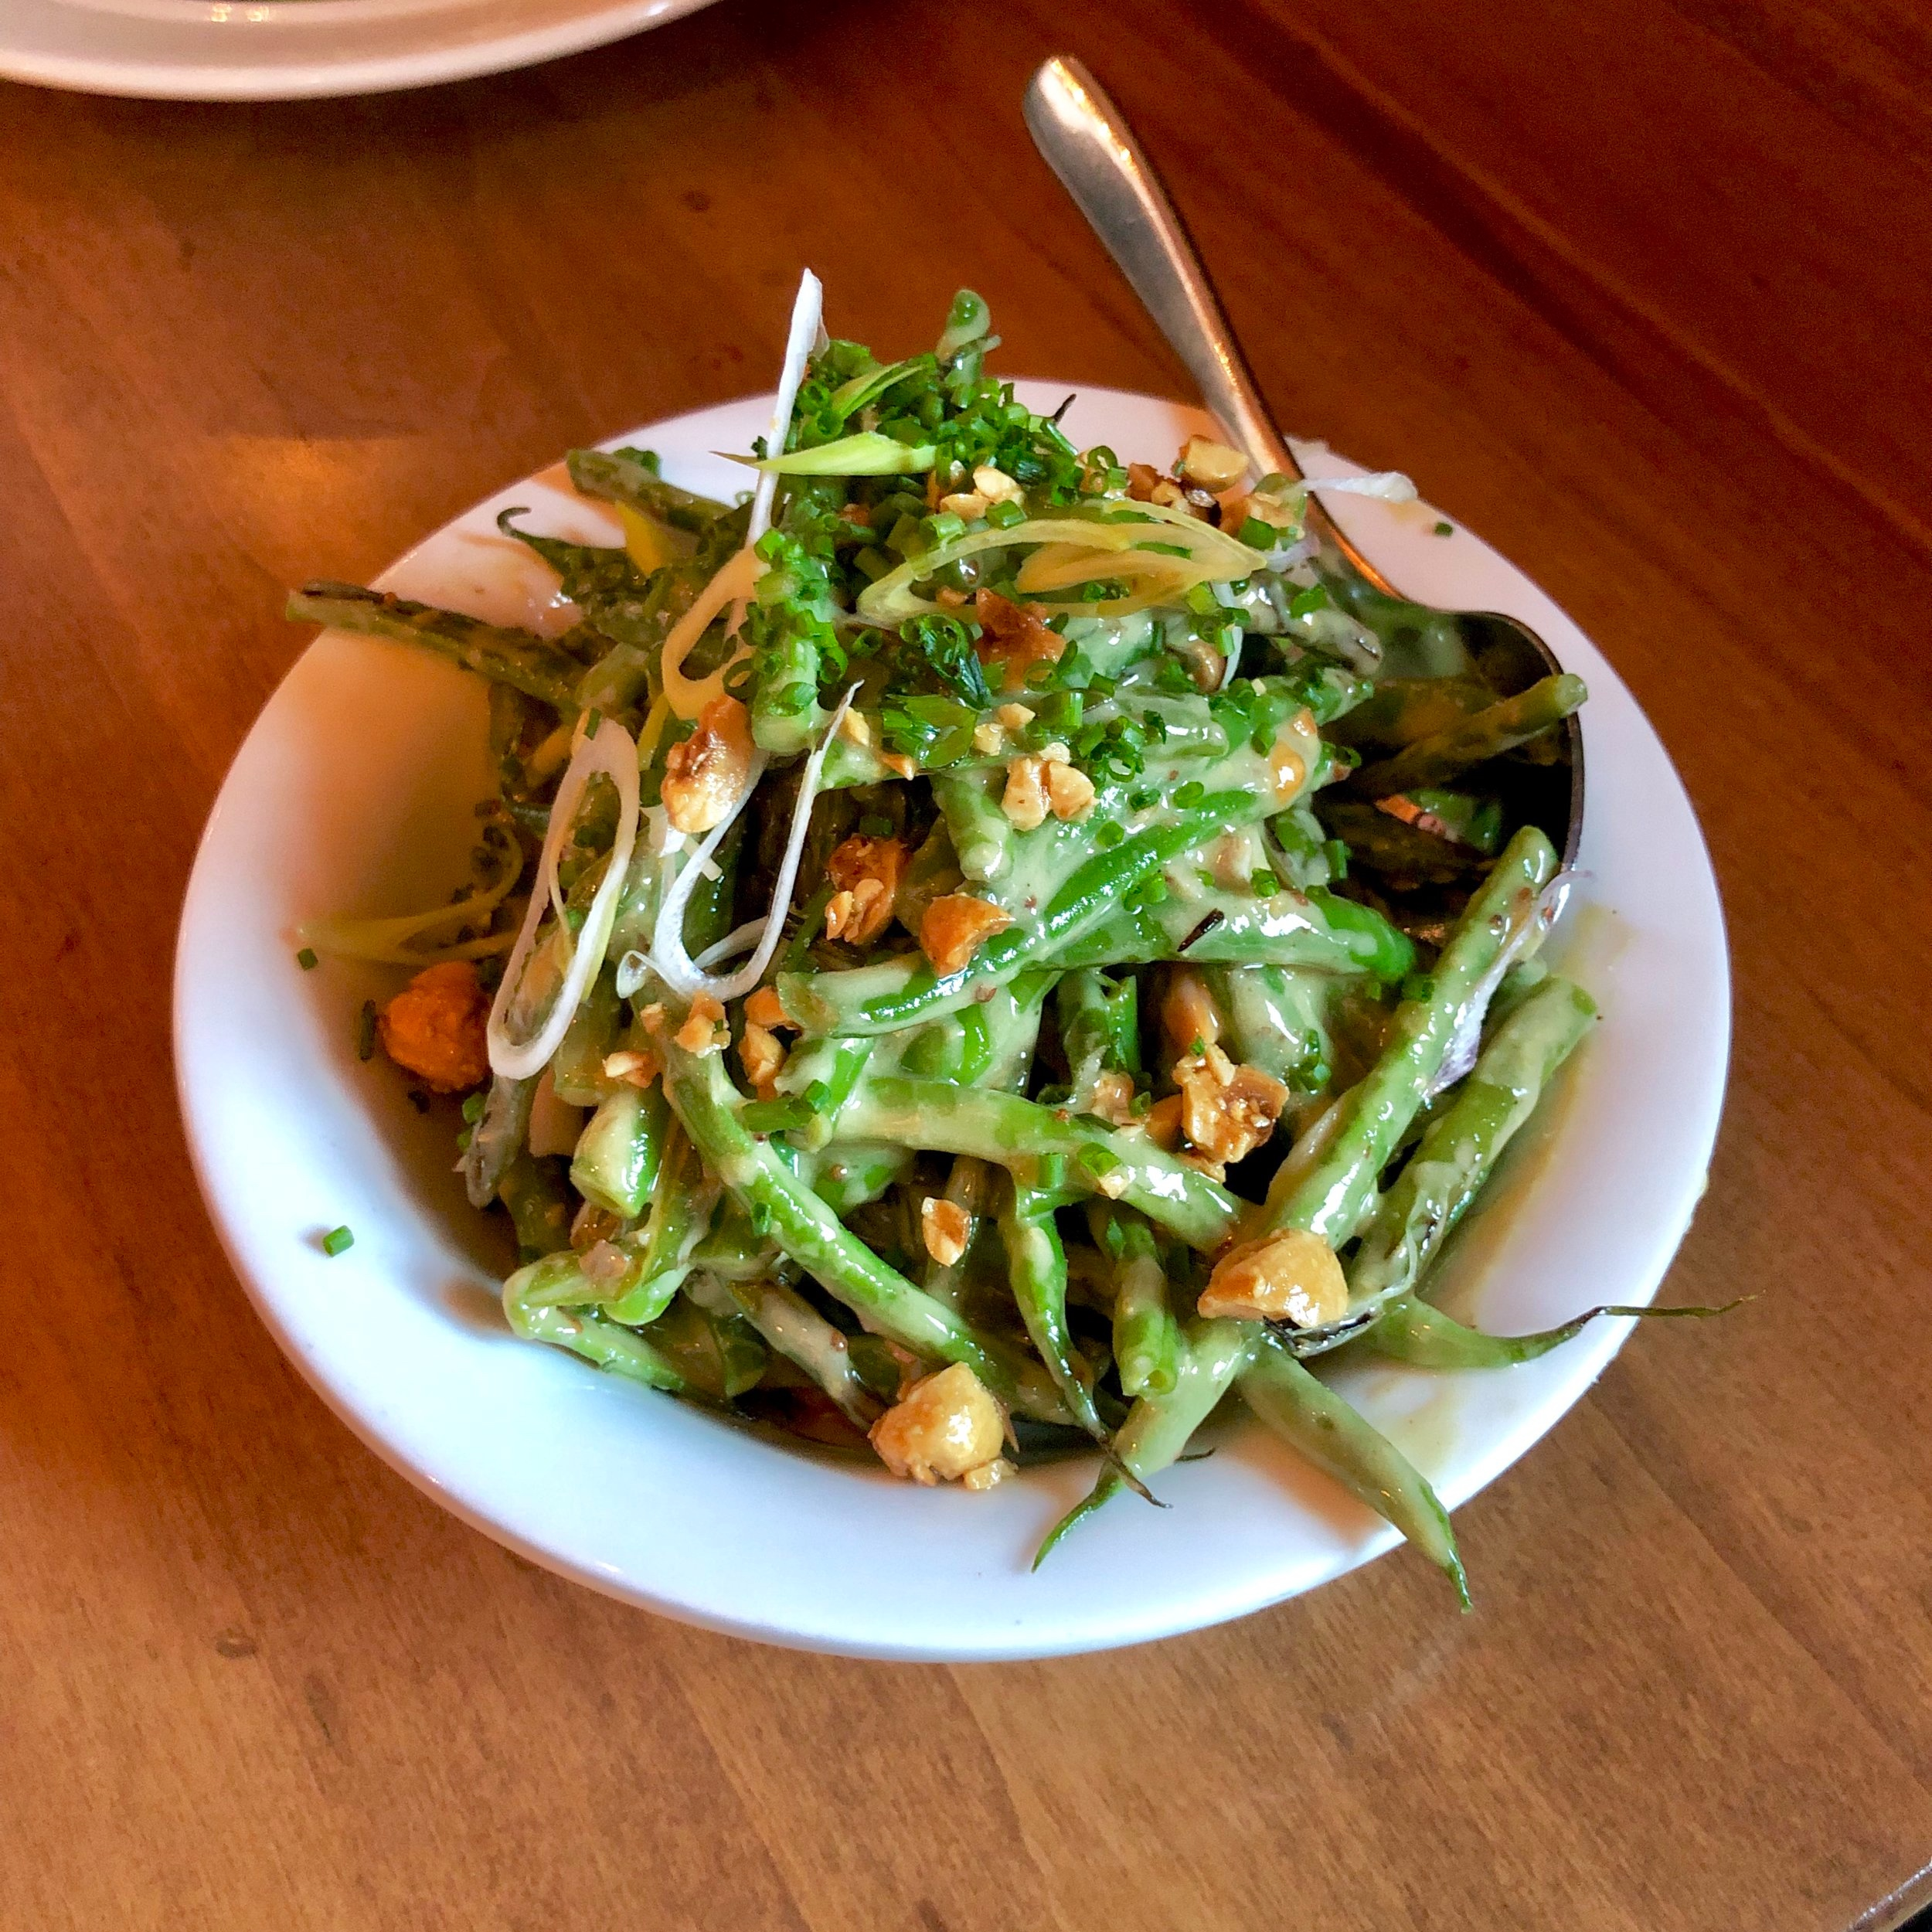 cool haricot verts, fresh serrano chili, toasted hazelnuts, frenchie vinaigrette